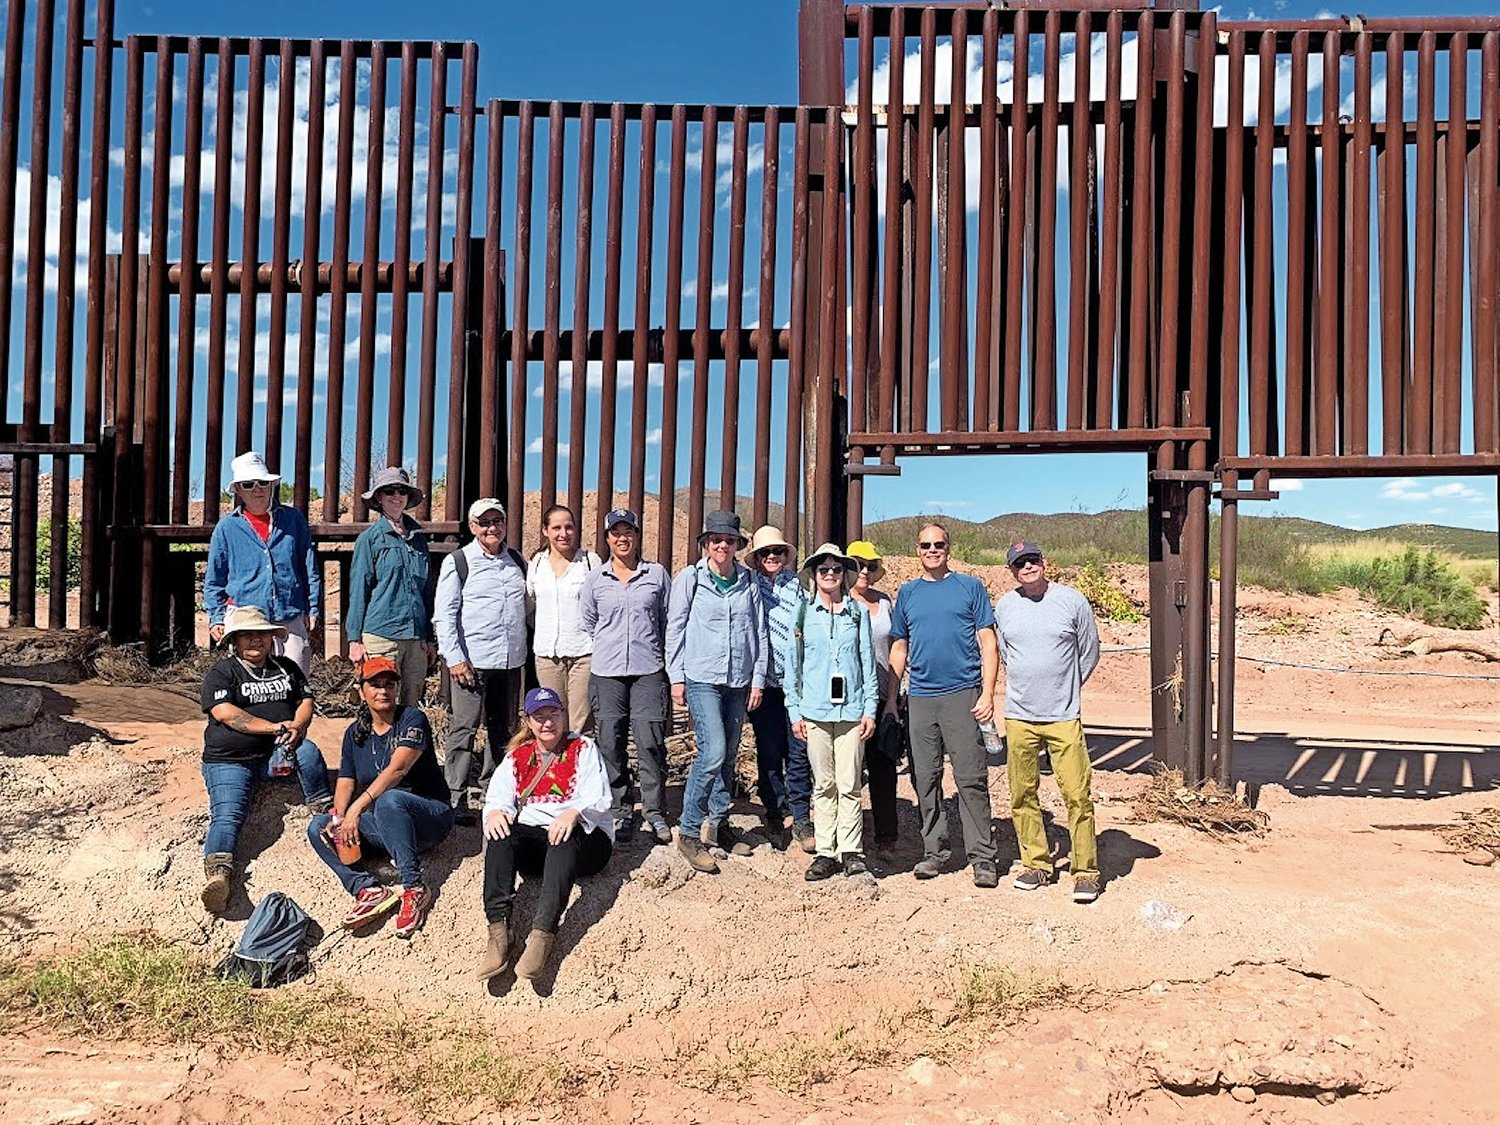 the Rev. Moira Ahearne of Merrick's Community Presbyterian Church, sitting, third from left, toured the border wall in Mexico's Sonoran Desert with a delegation from the Fifth Avenue Presbyterian Church in Manhattan from Oct. 12-19.